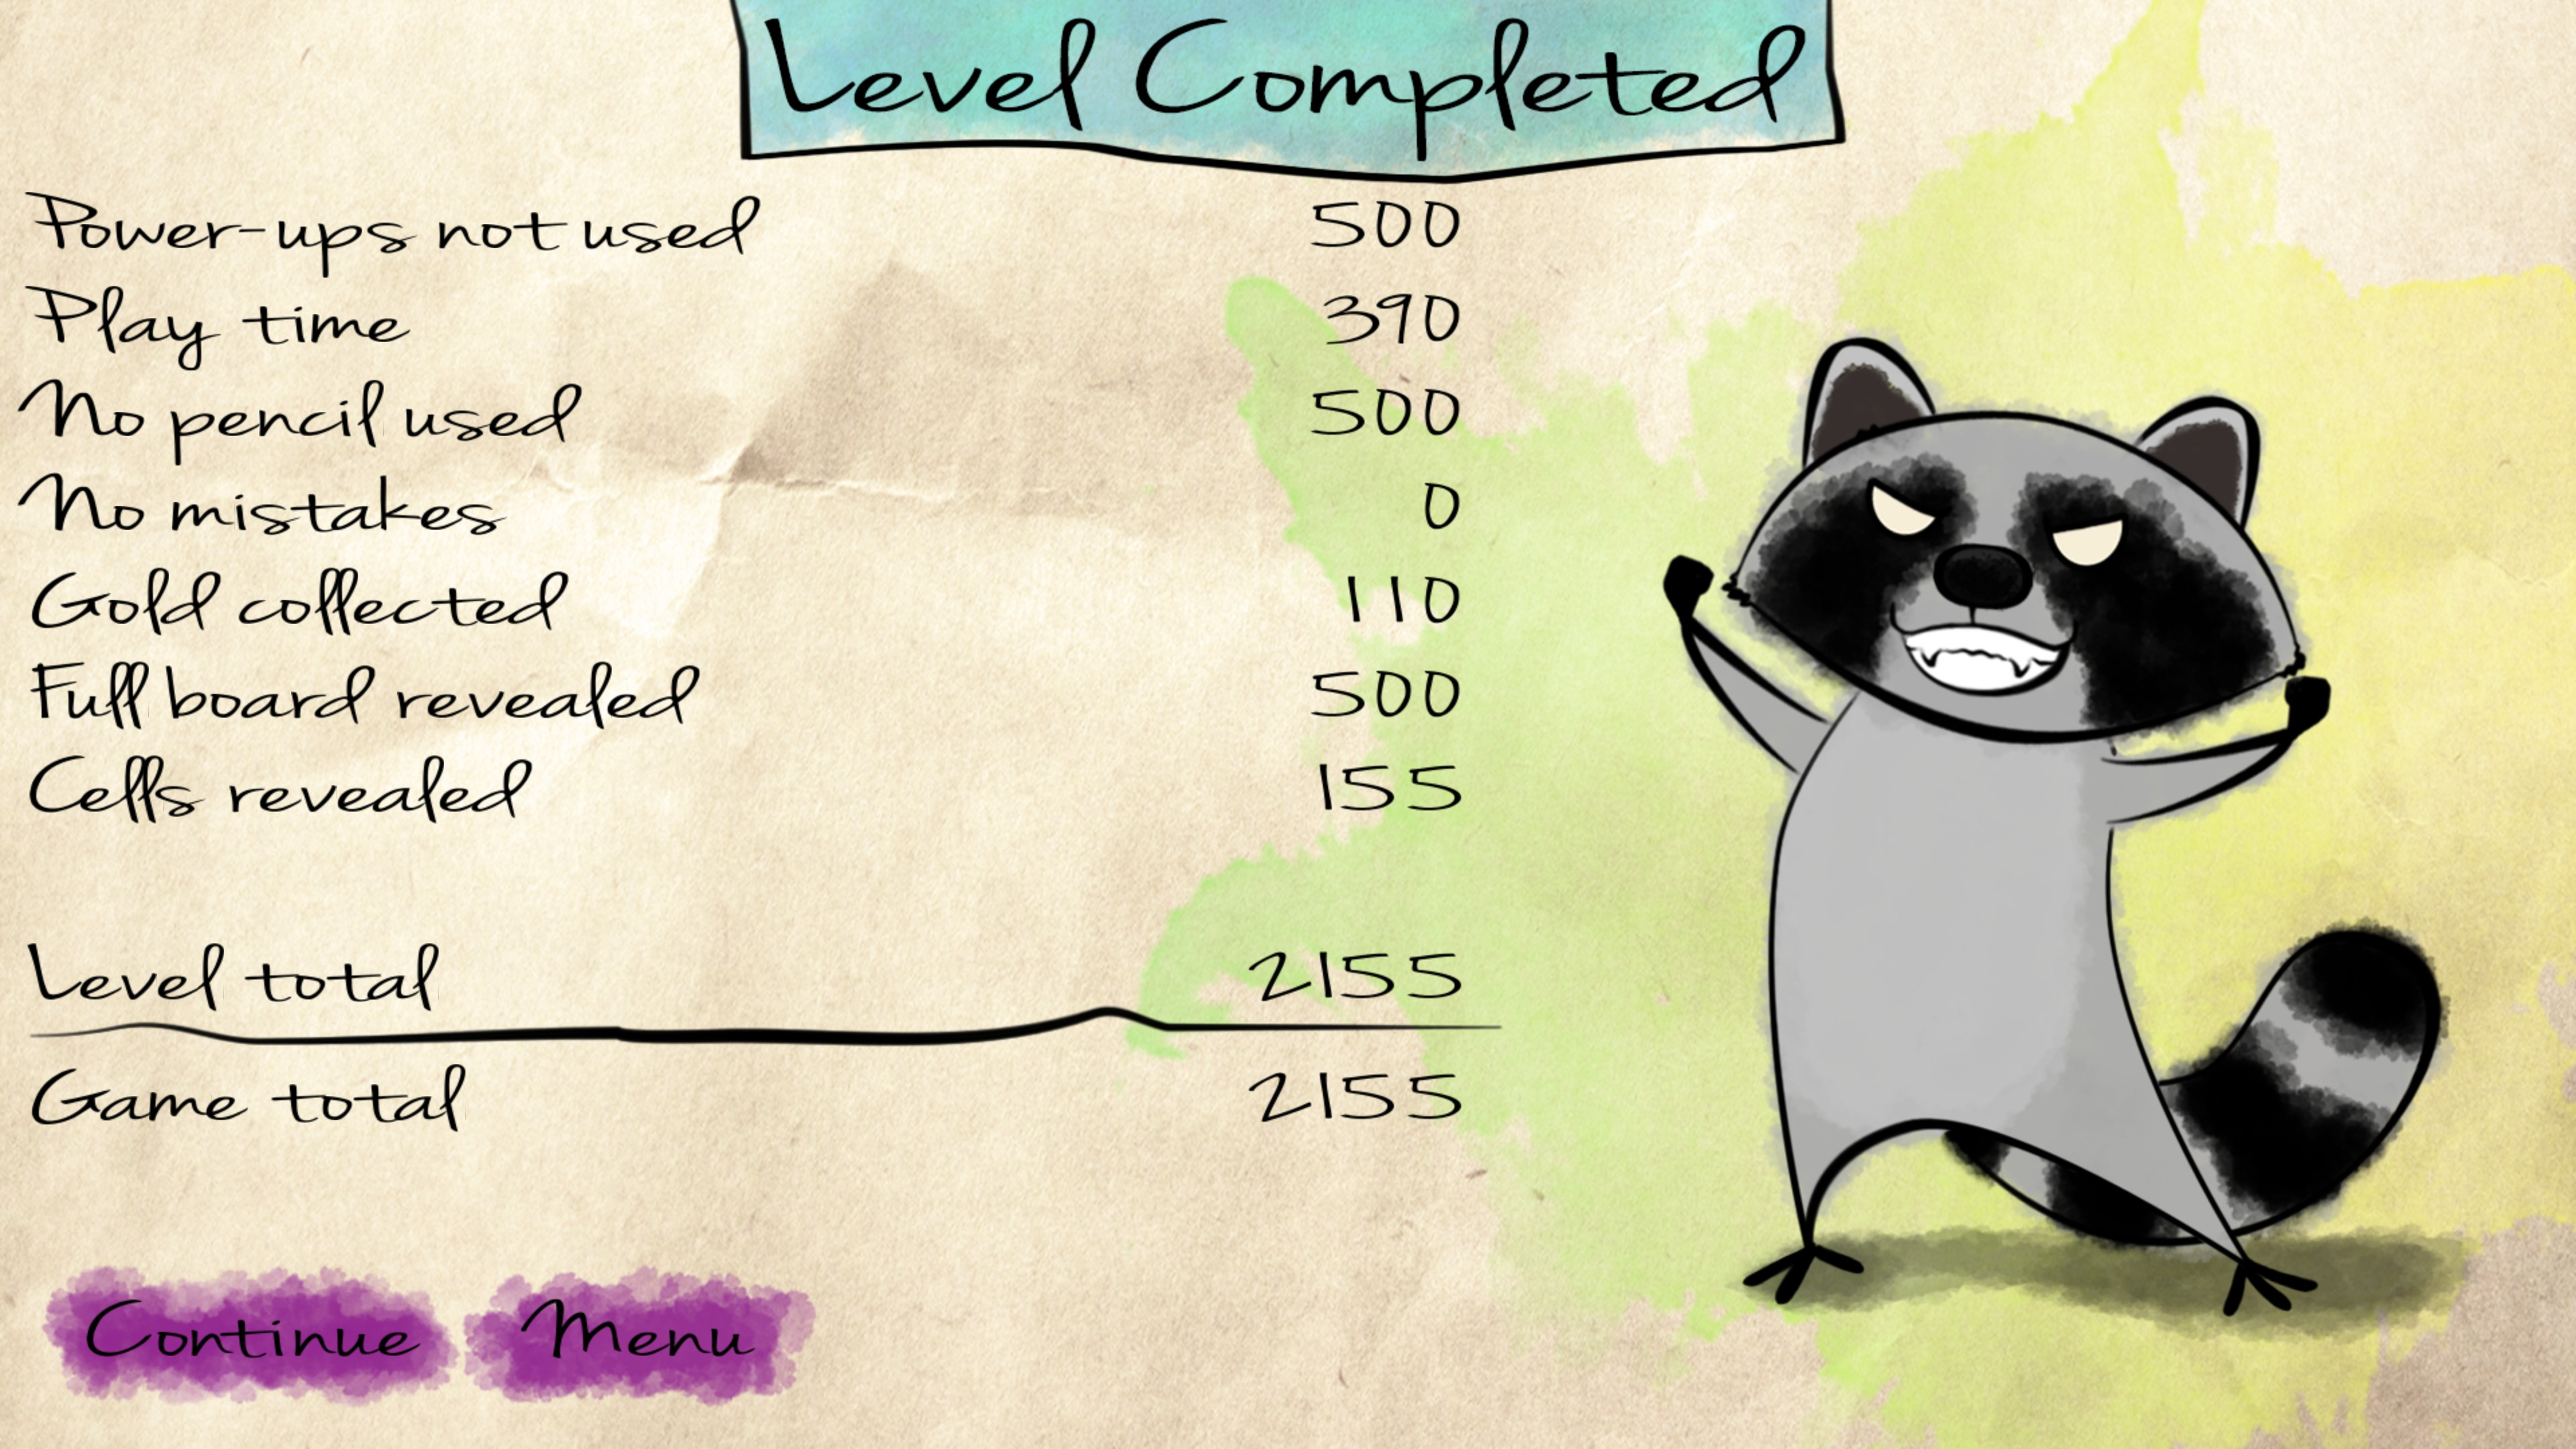 Level complete scoring including power-ups used, playtime, pencil used, mistakes, gold collected, full board revealed, and cells revealed.